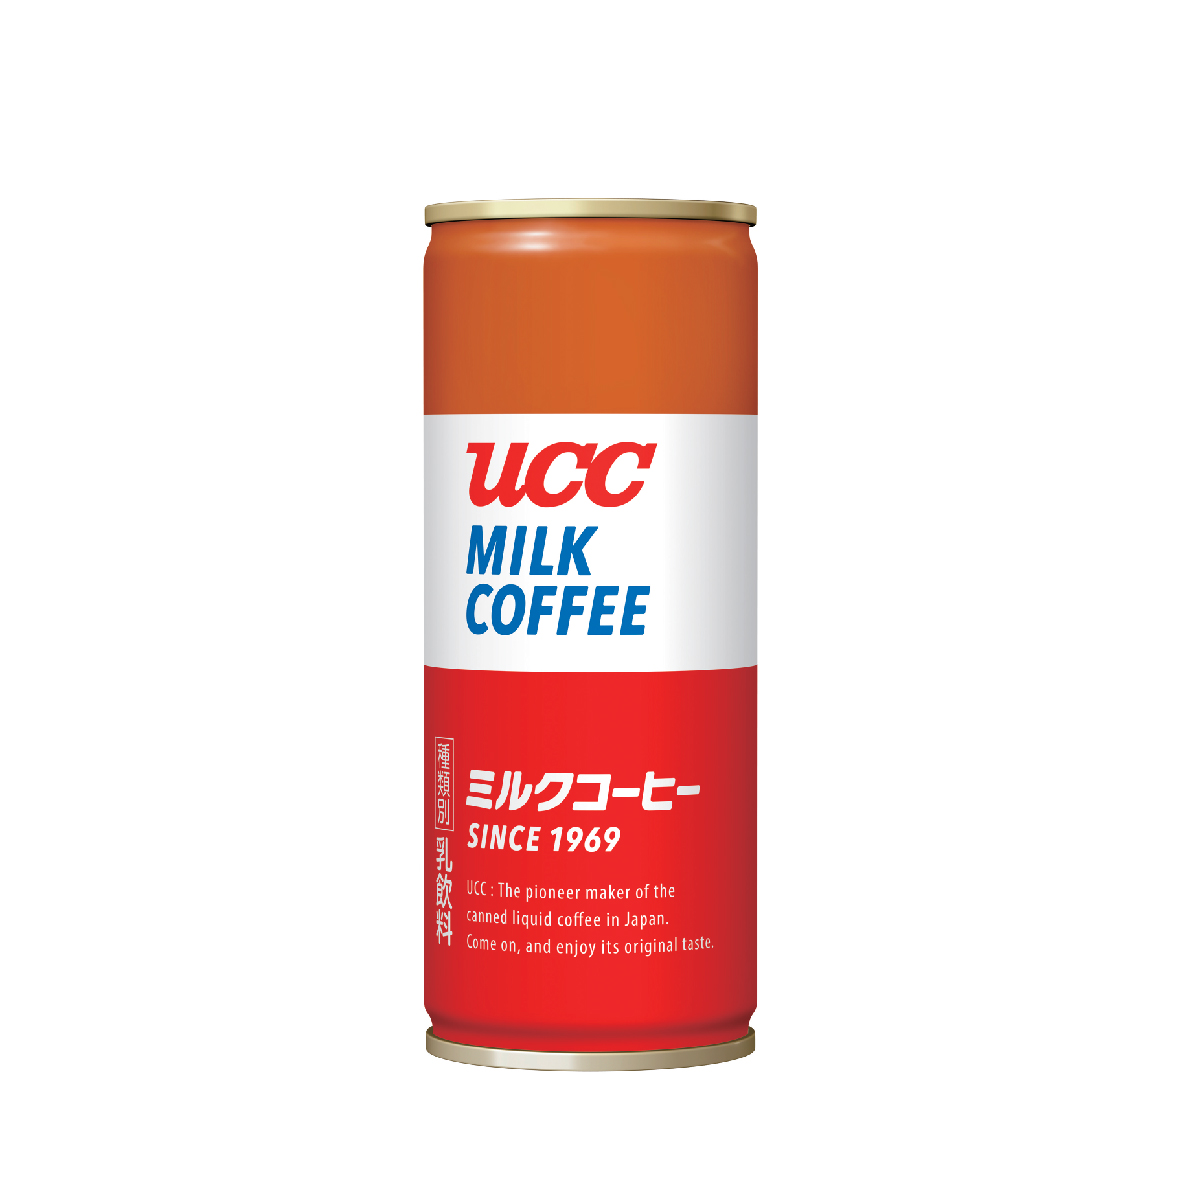 UCC Milk Canned Coffee